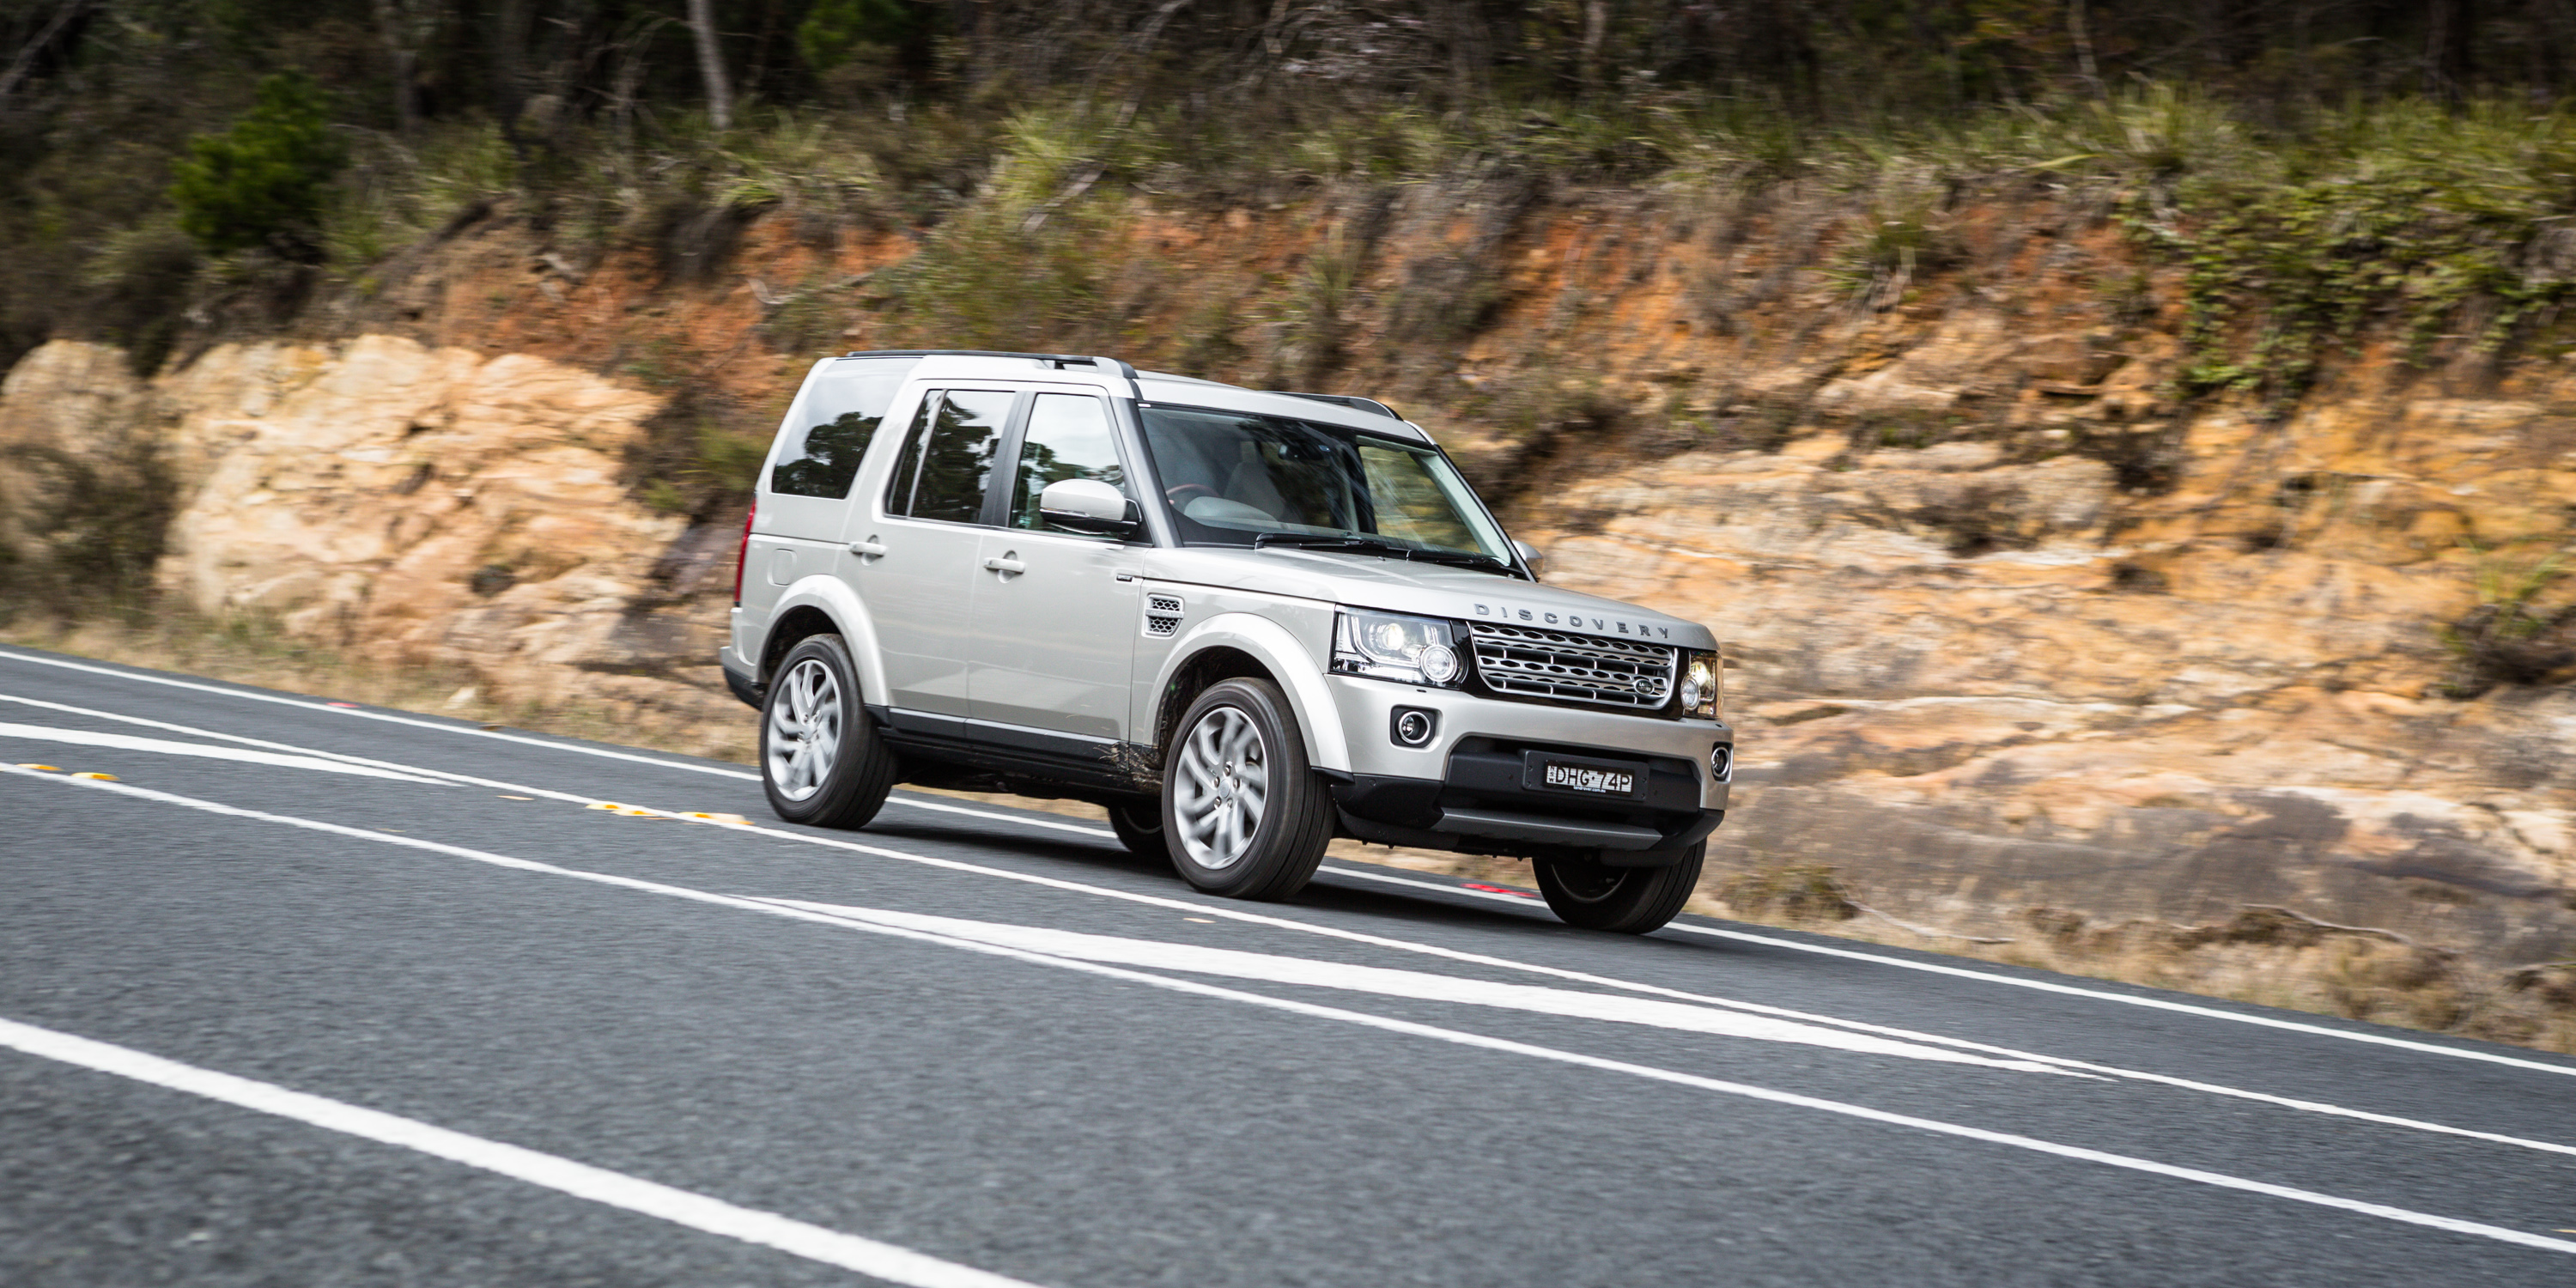 2016 land rover discovery sdv6 hse off road review caradvice. Black Bedroom Furniture Sets. Home Design Ideas